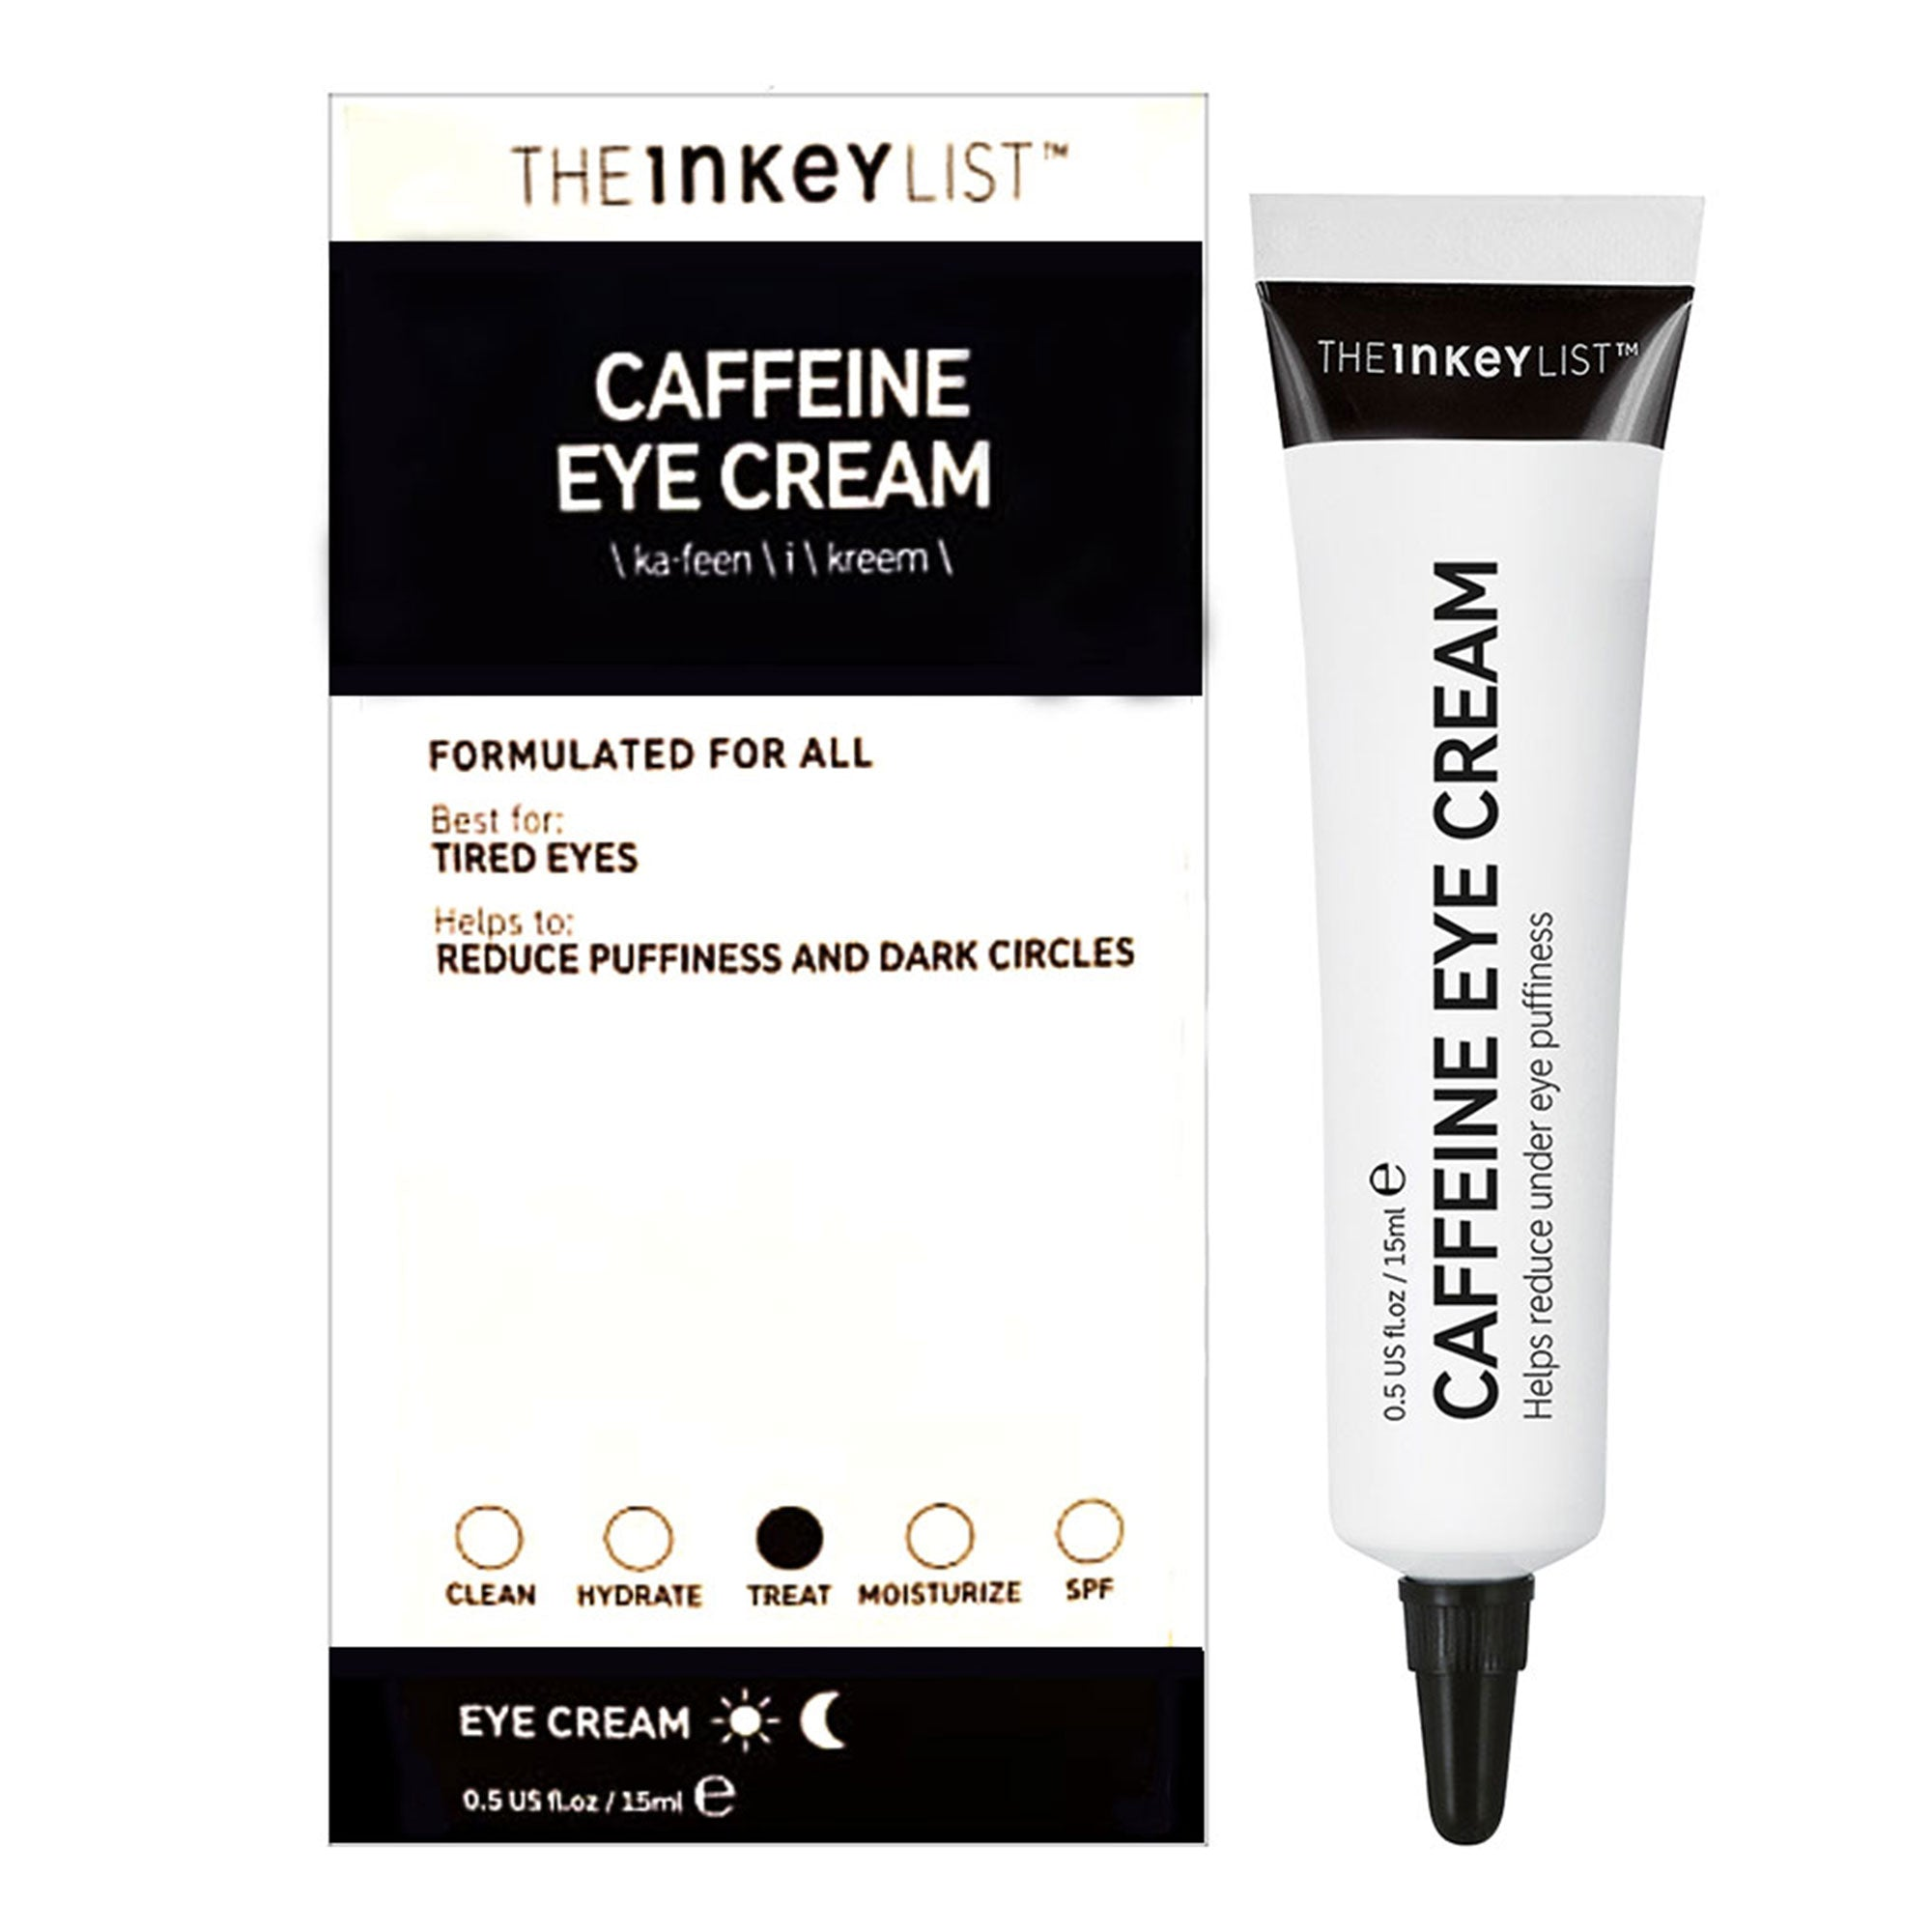 The INKEY List Caffeine Eye Cream